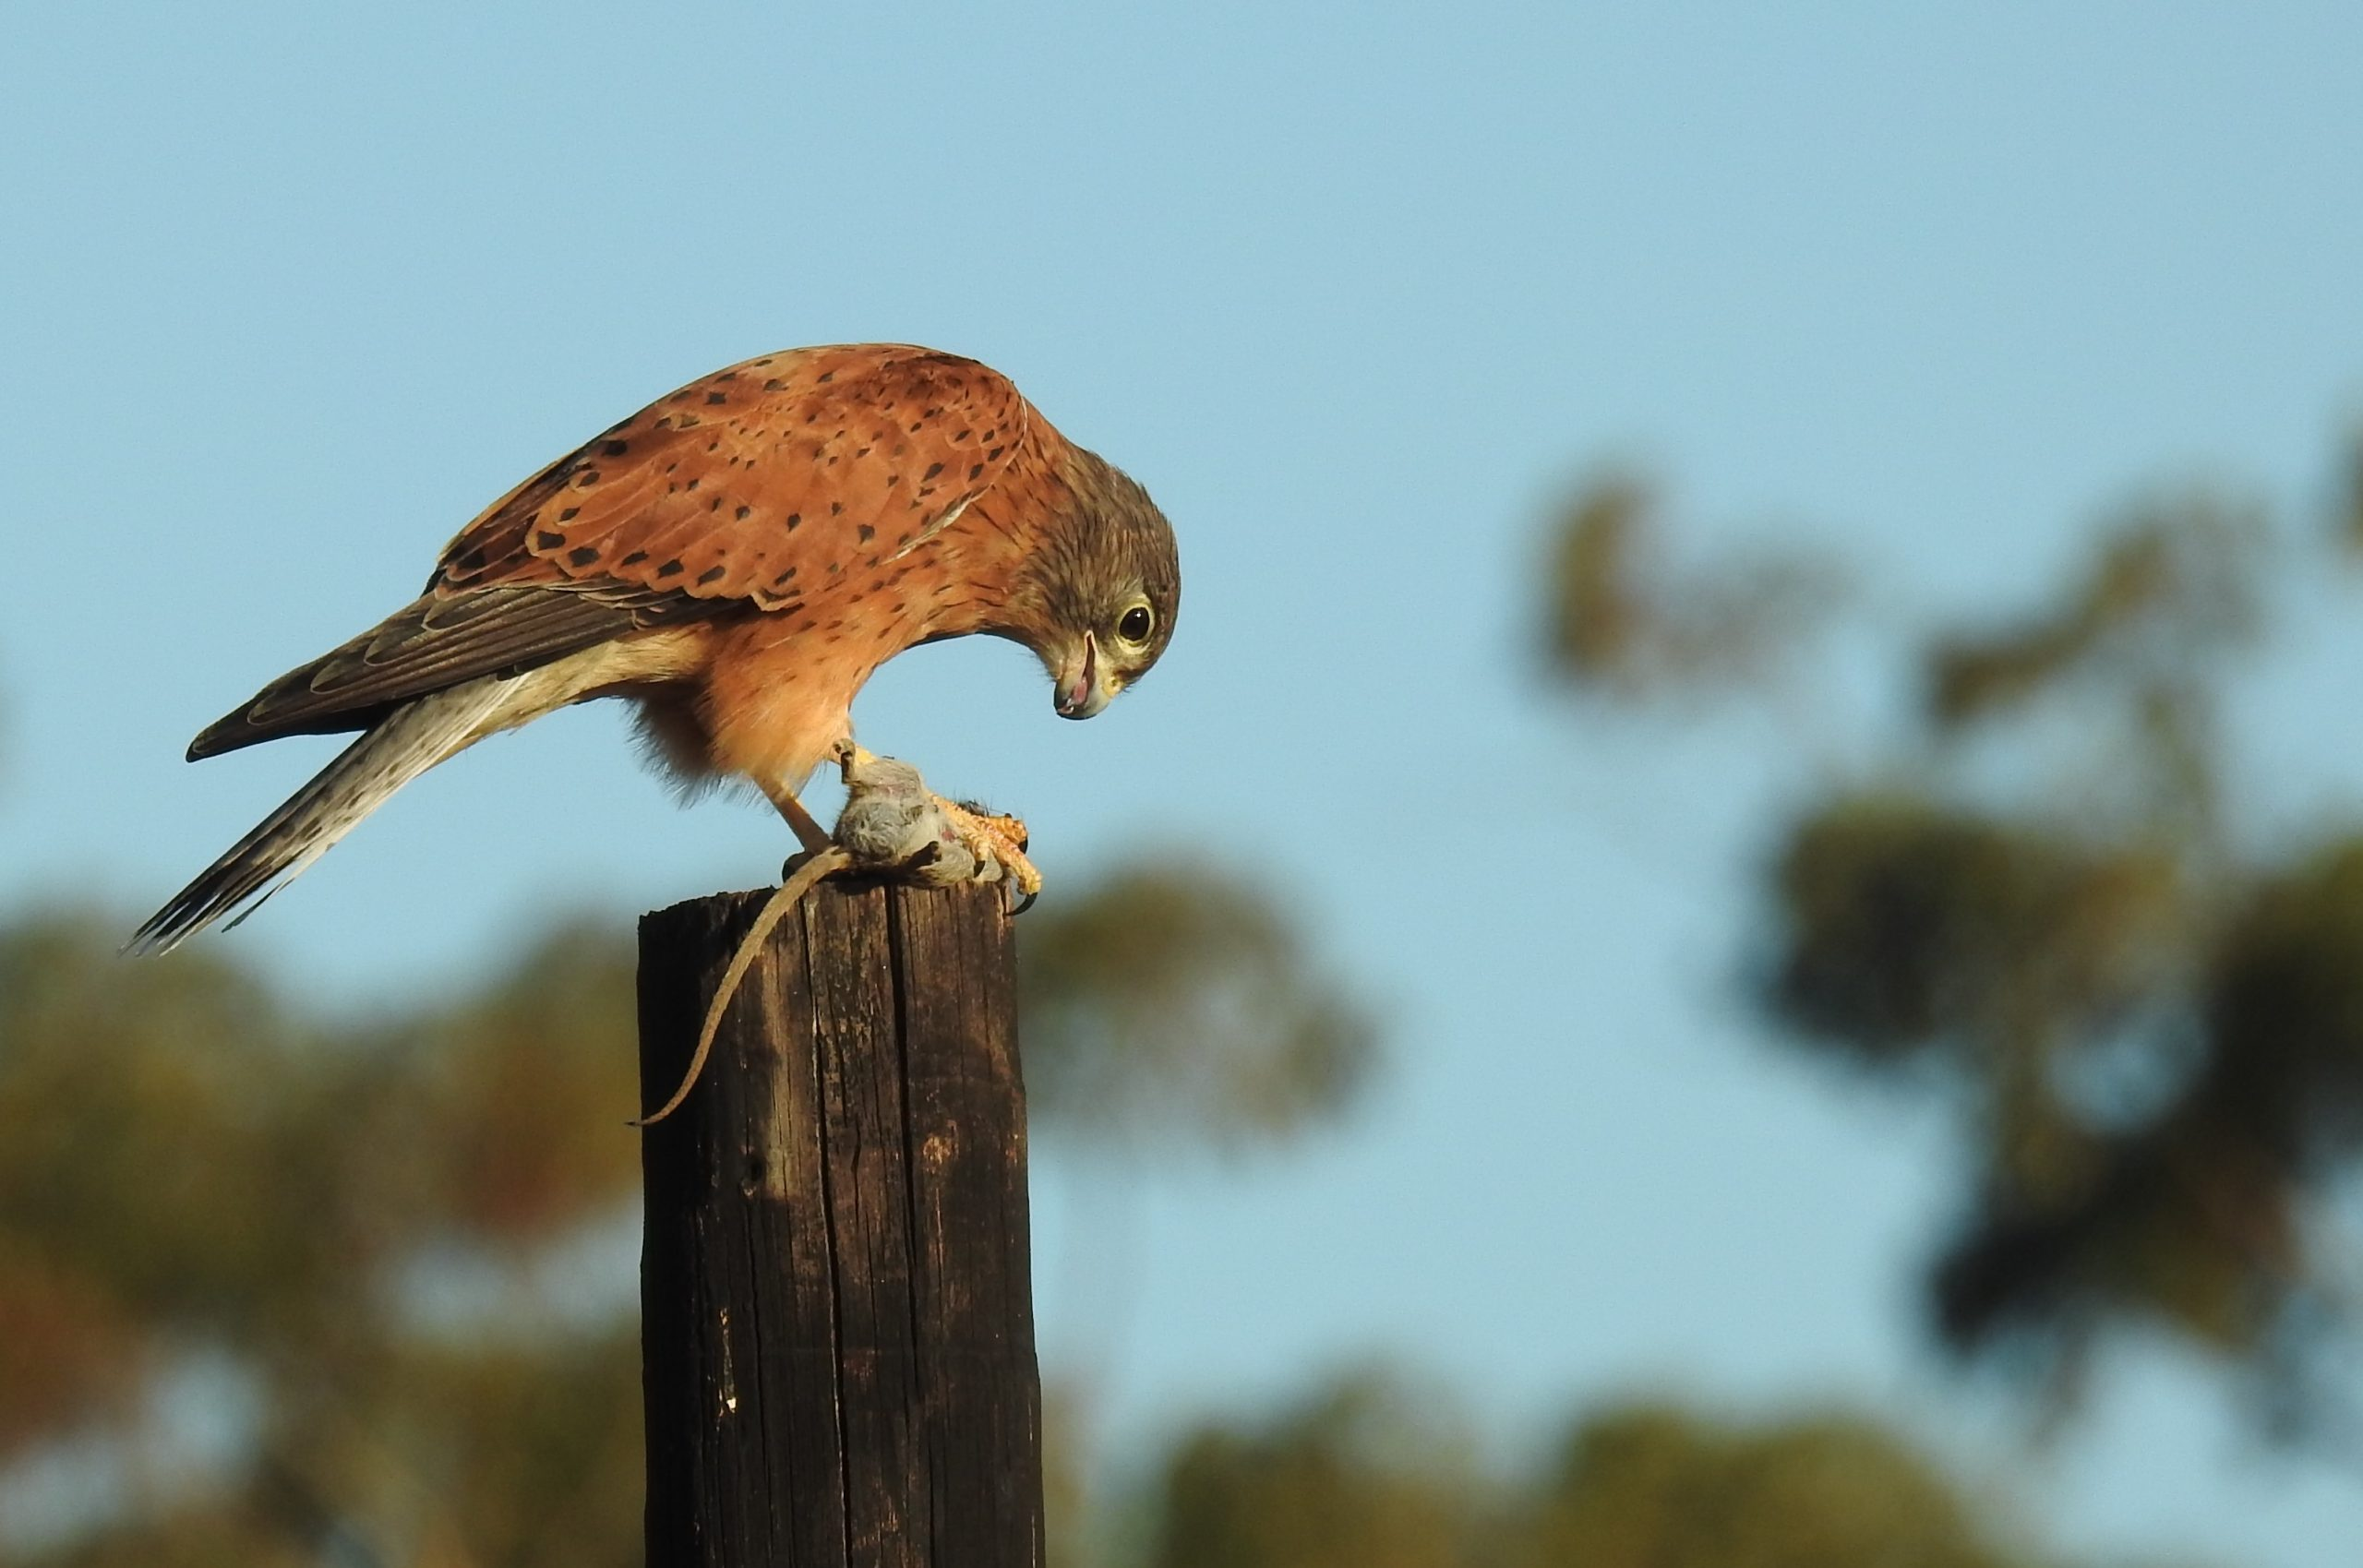 One of 113 bird species spotted at Mooiplaas Rock Kestrel photograhed in Pinot Noir vineyards. scaled WFF Conservation Champion Status For Mooiplaas Wine Estate